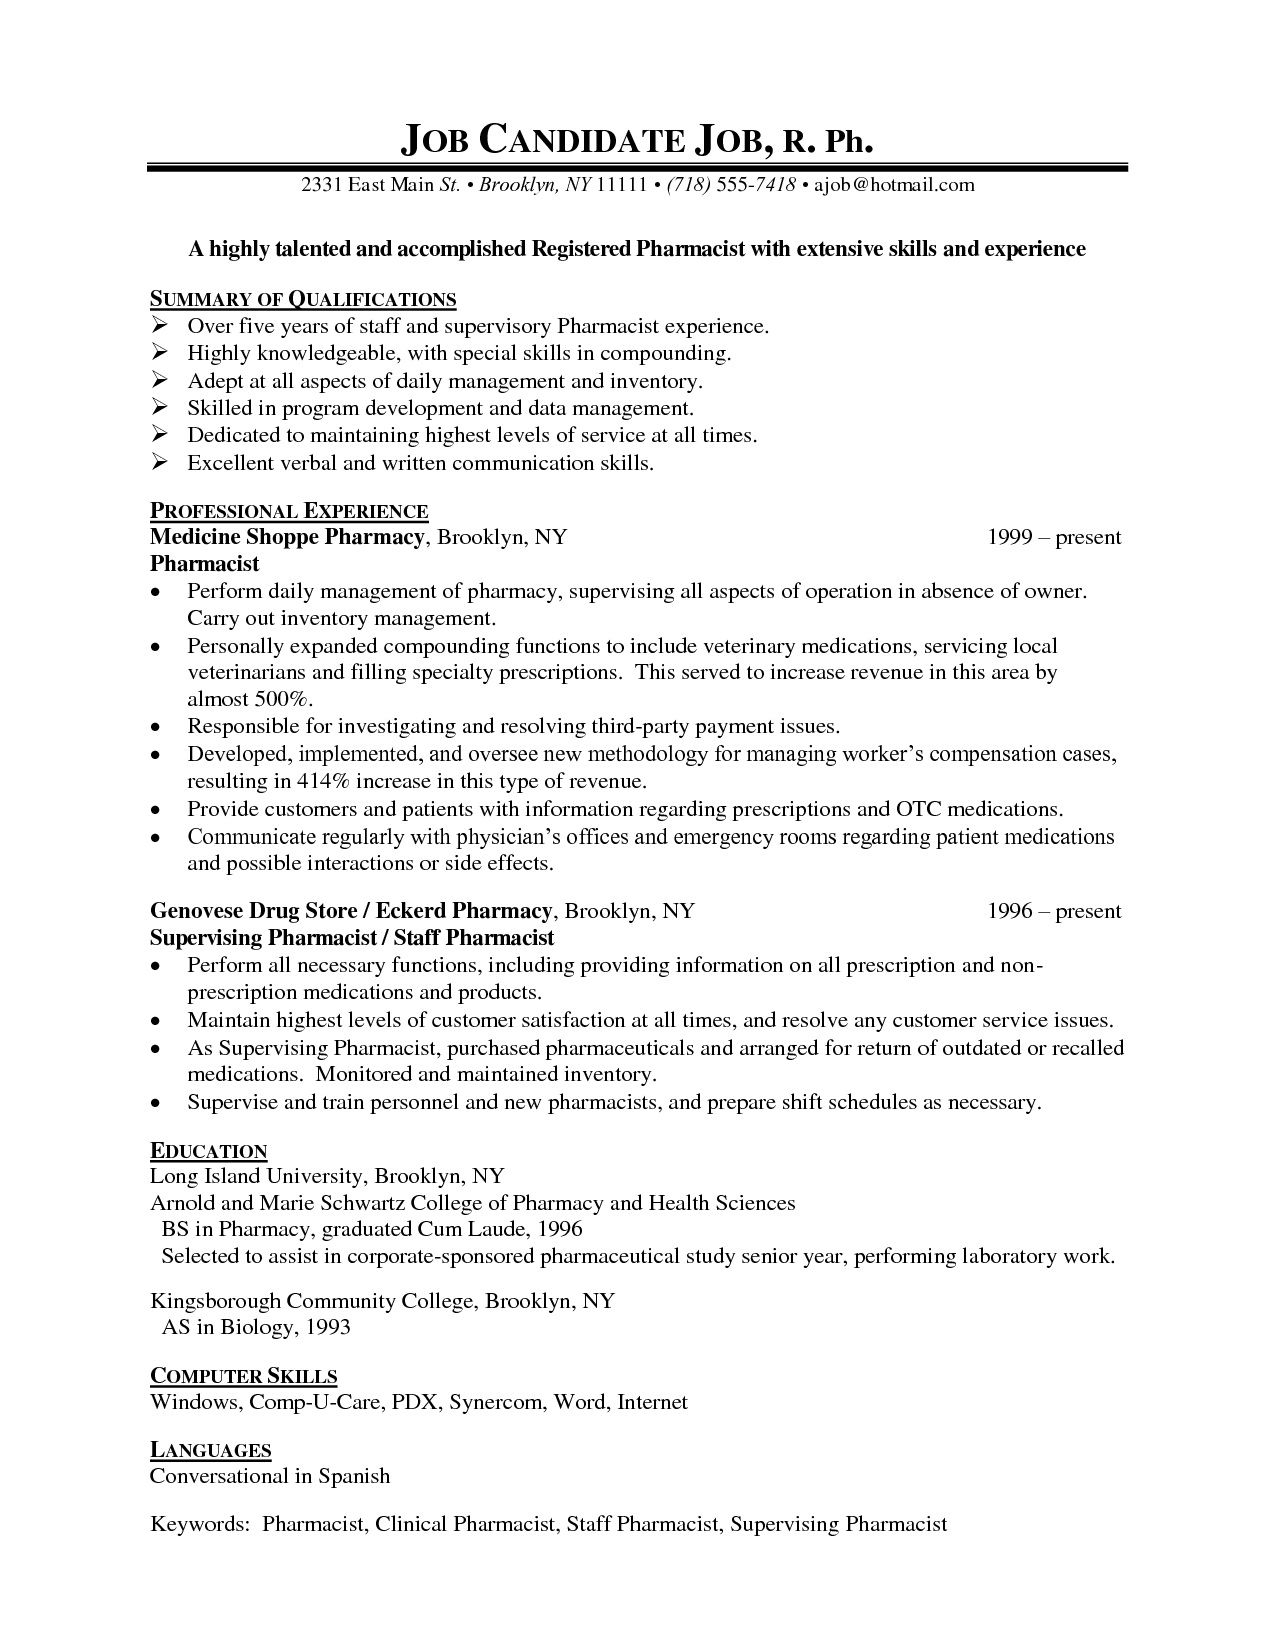 Good Ambulatory Care Pharmacist Sample Resume 16 Cashier Cover Letter Sample Job  And Resume Template. Inside Pharmacist Resume Template